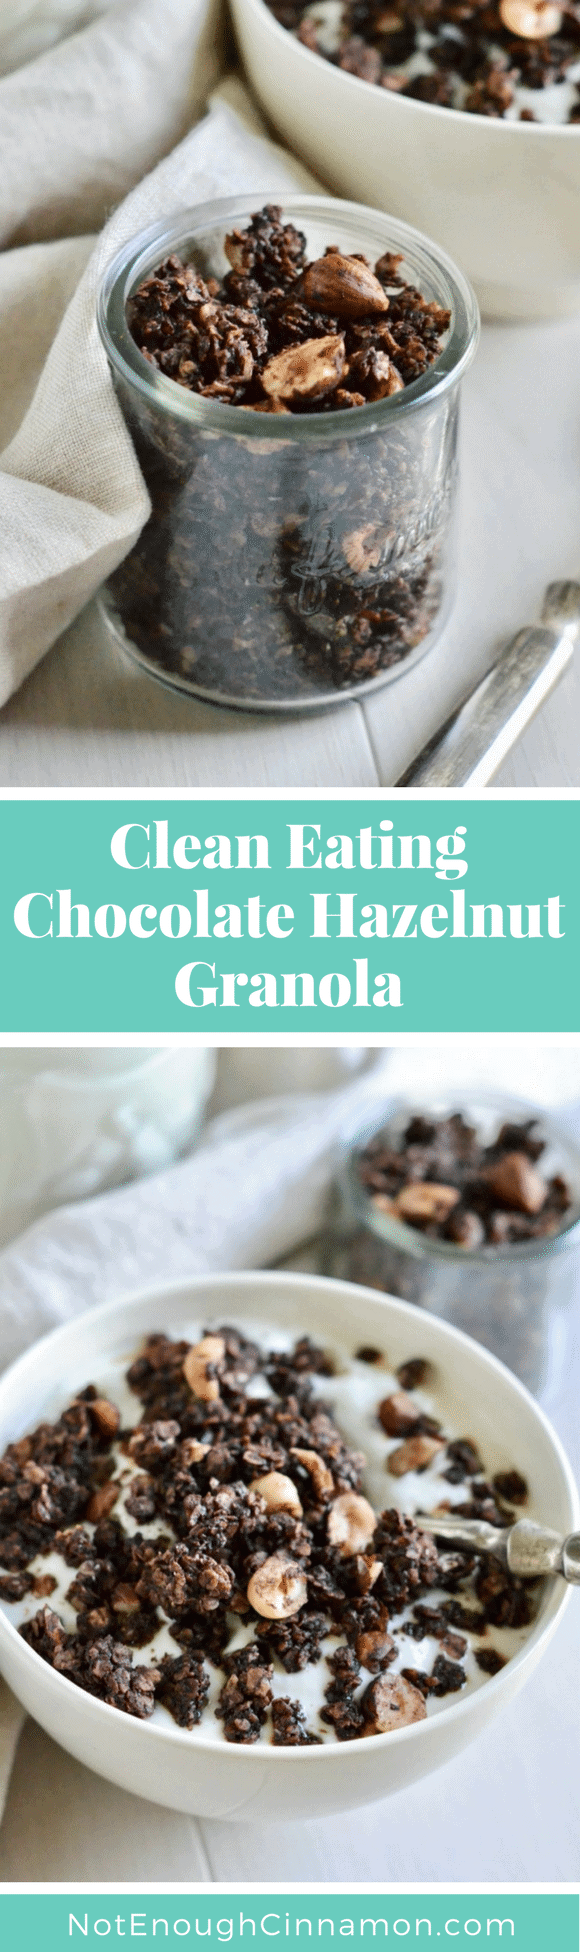 Clean Eating Chocolate Hazelnut Granola | This easy homemade granola with cocoa, hazelnuts and maple syrup is perfect for a healthy snack or breakfast. Plus it is refined sugar-free and gluten-free. #granolarecipe, #rocher, #breakfast, #brunch, #cleaneating, #glutenfreerecipes